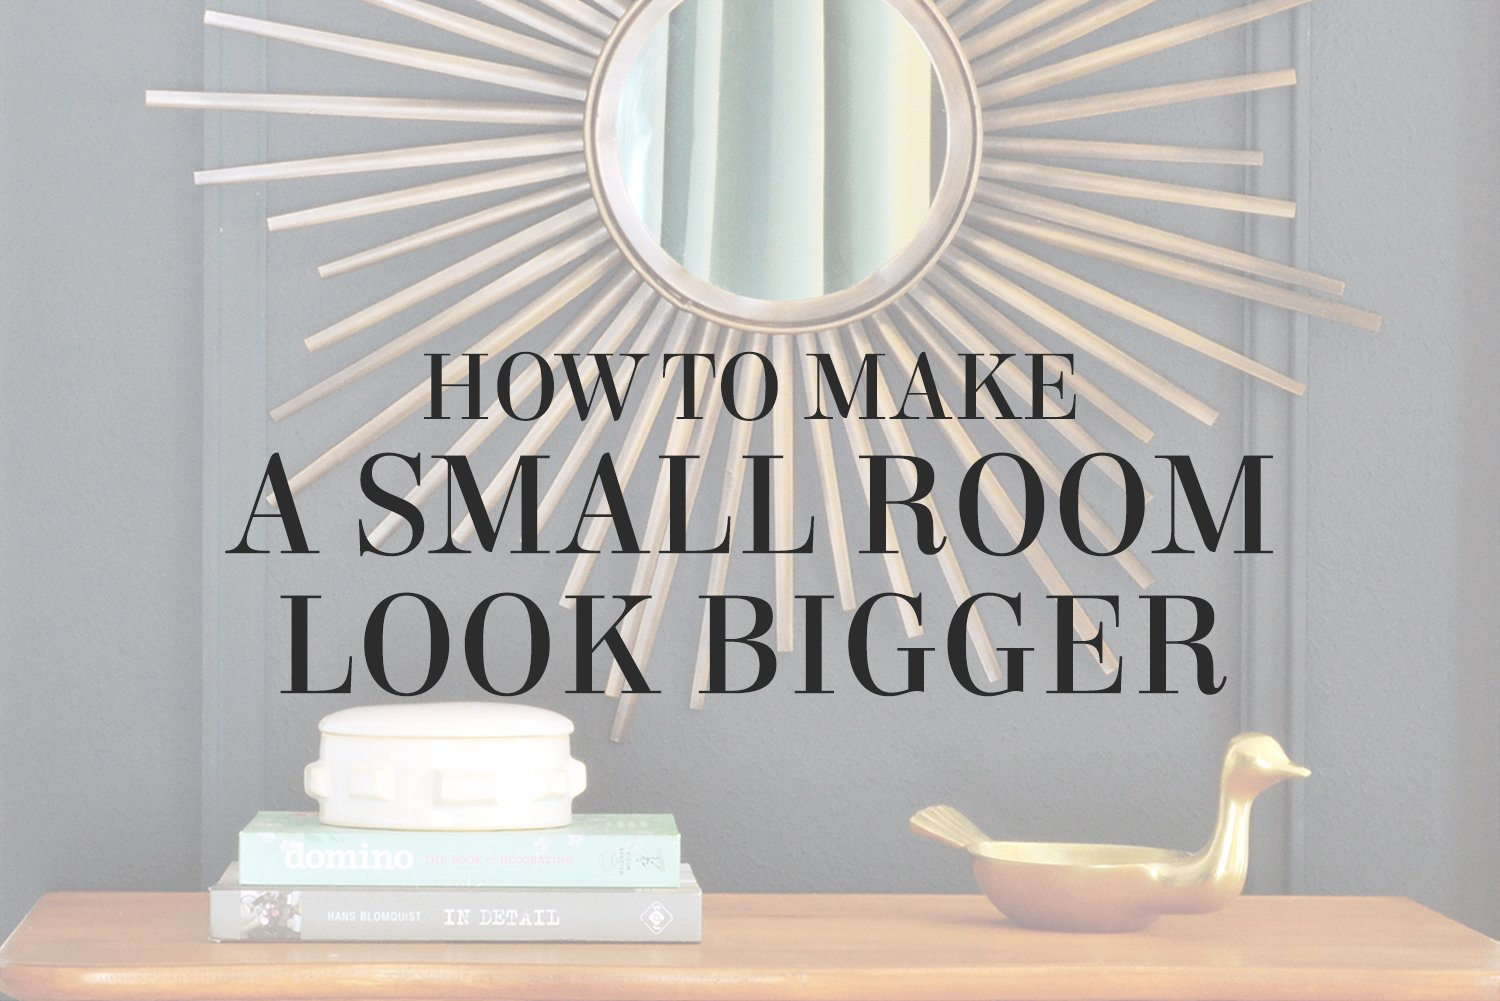 How to make a small room look big and sexy! 4 tips from interior designer Lesley Myrick.